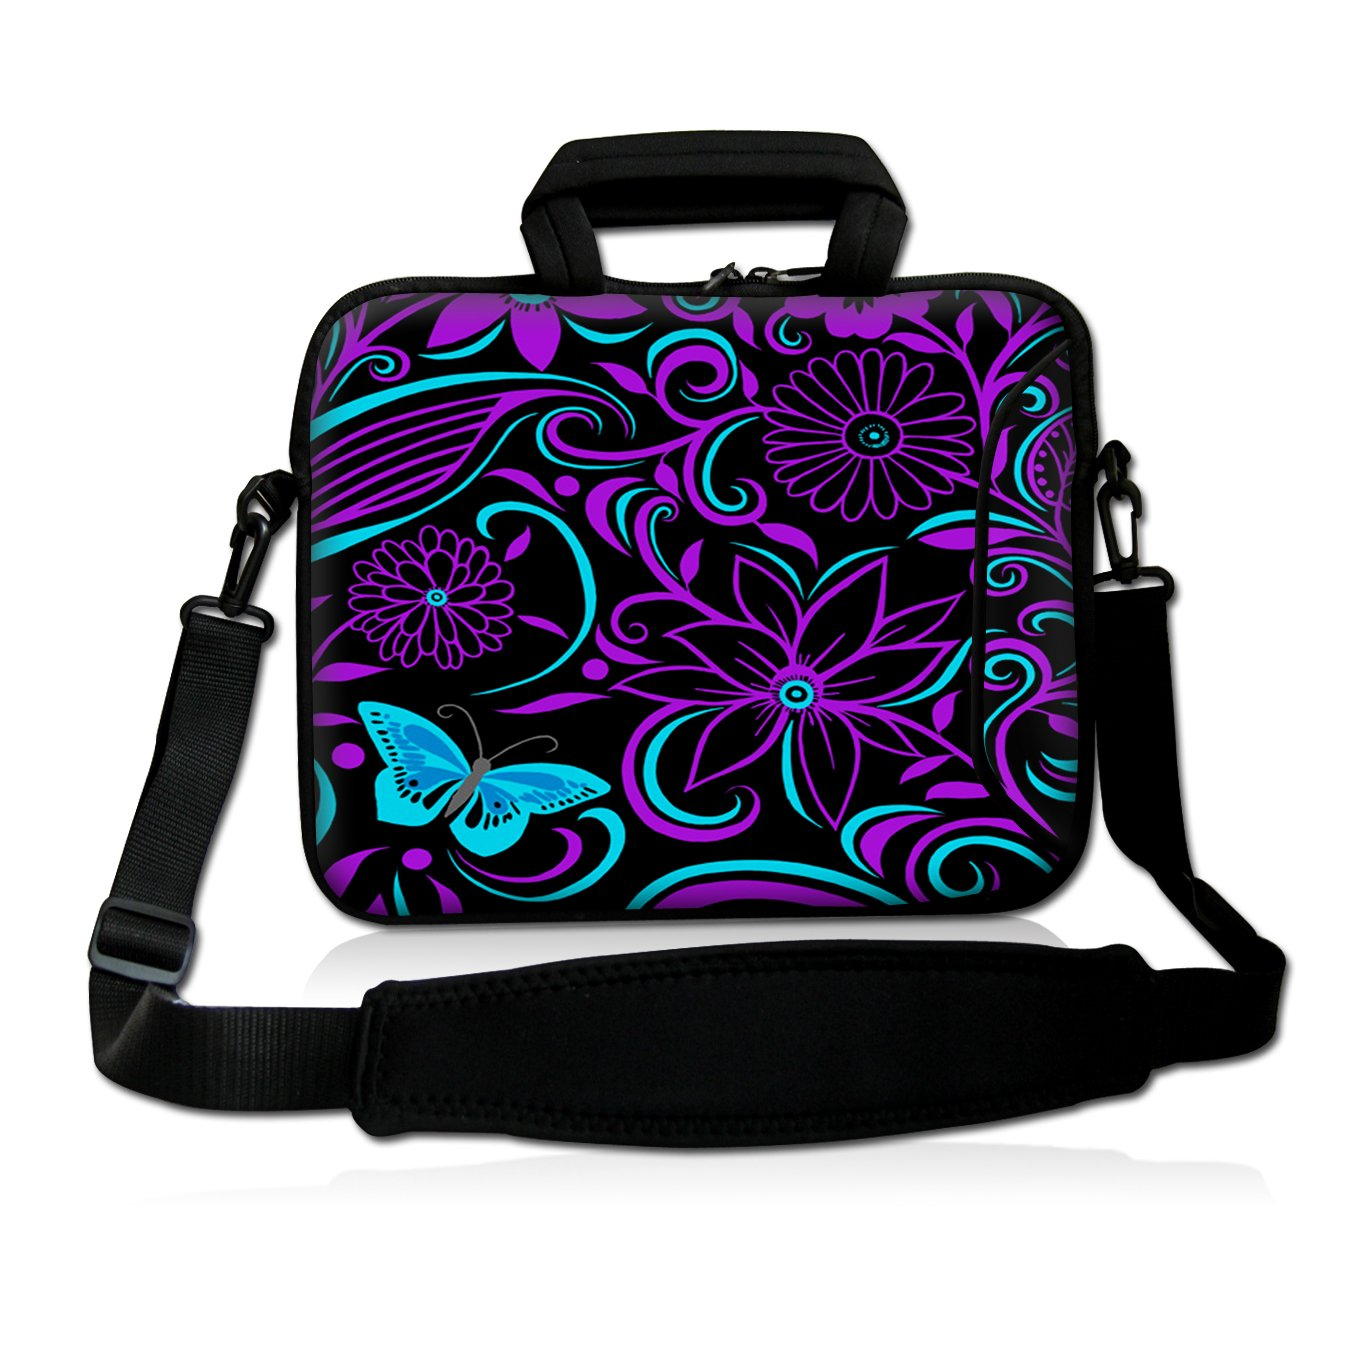 Purple-black design 9.7'' 10'' 10.2'' inch Laptop Netbook Tablet Shoulder Case Carrying Sleeve bag For Apple iPad/Asus EeePC/Acer Aspire one/Dell inspiron mini/Samsung N145/Lenovo S205 S10/HP Touchpad Mini 210